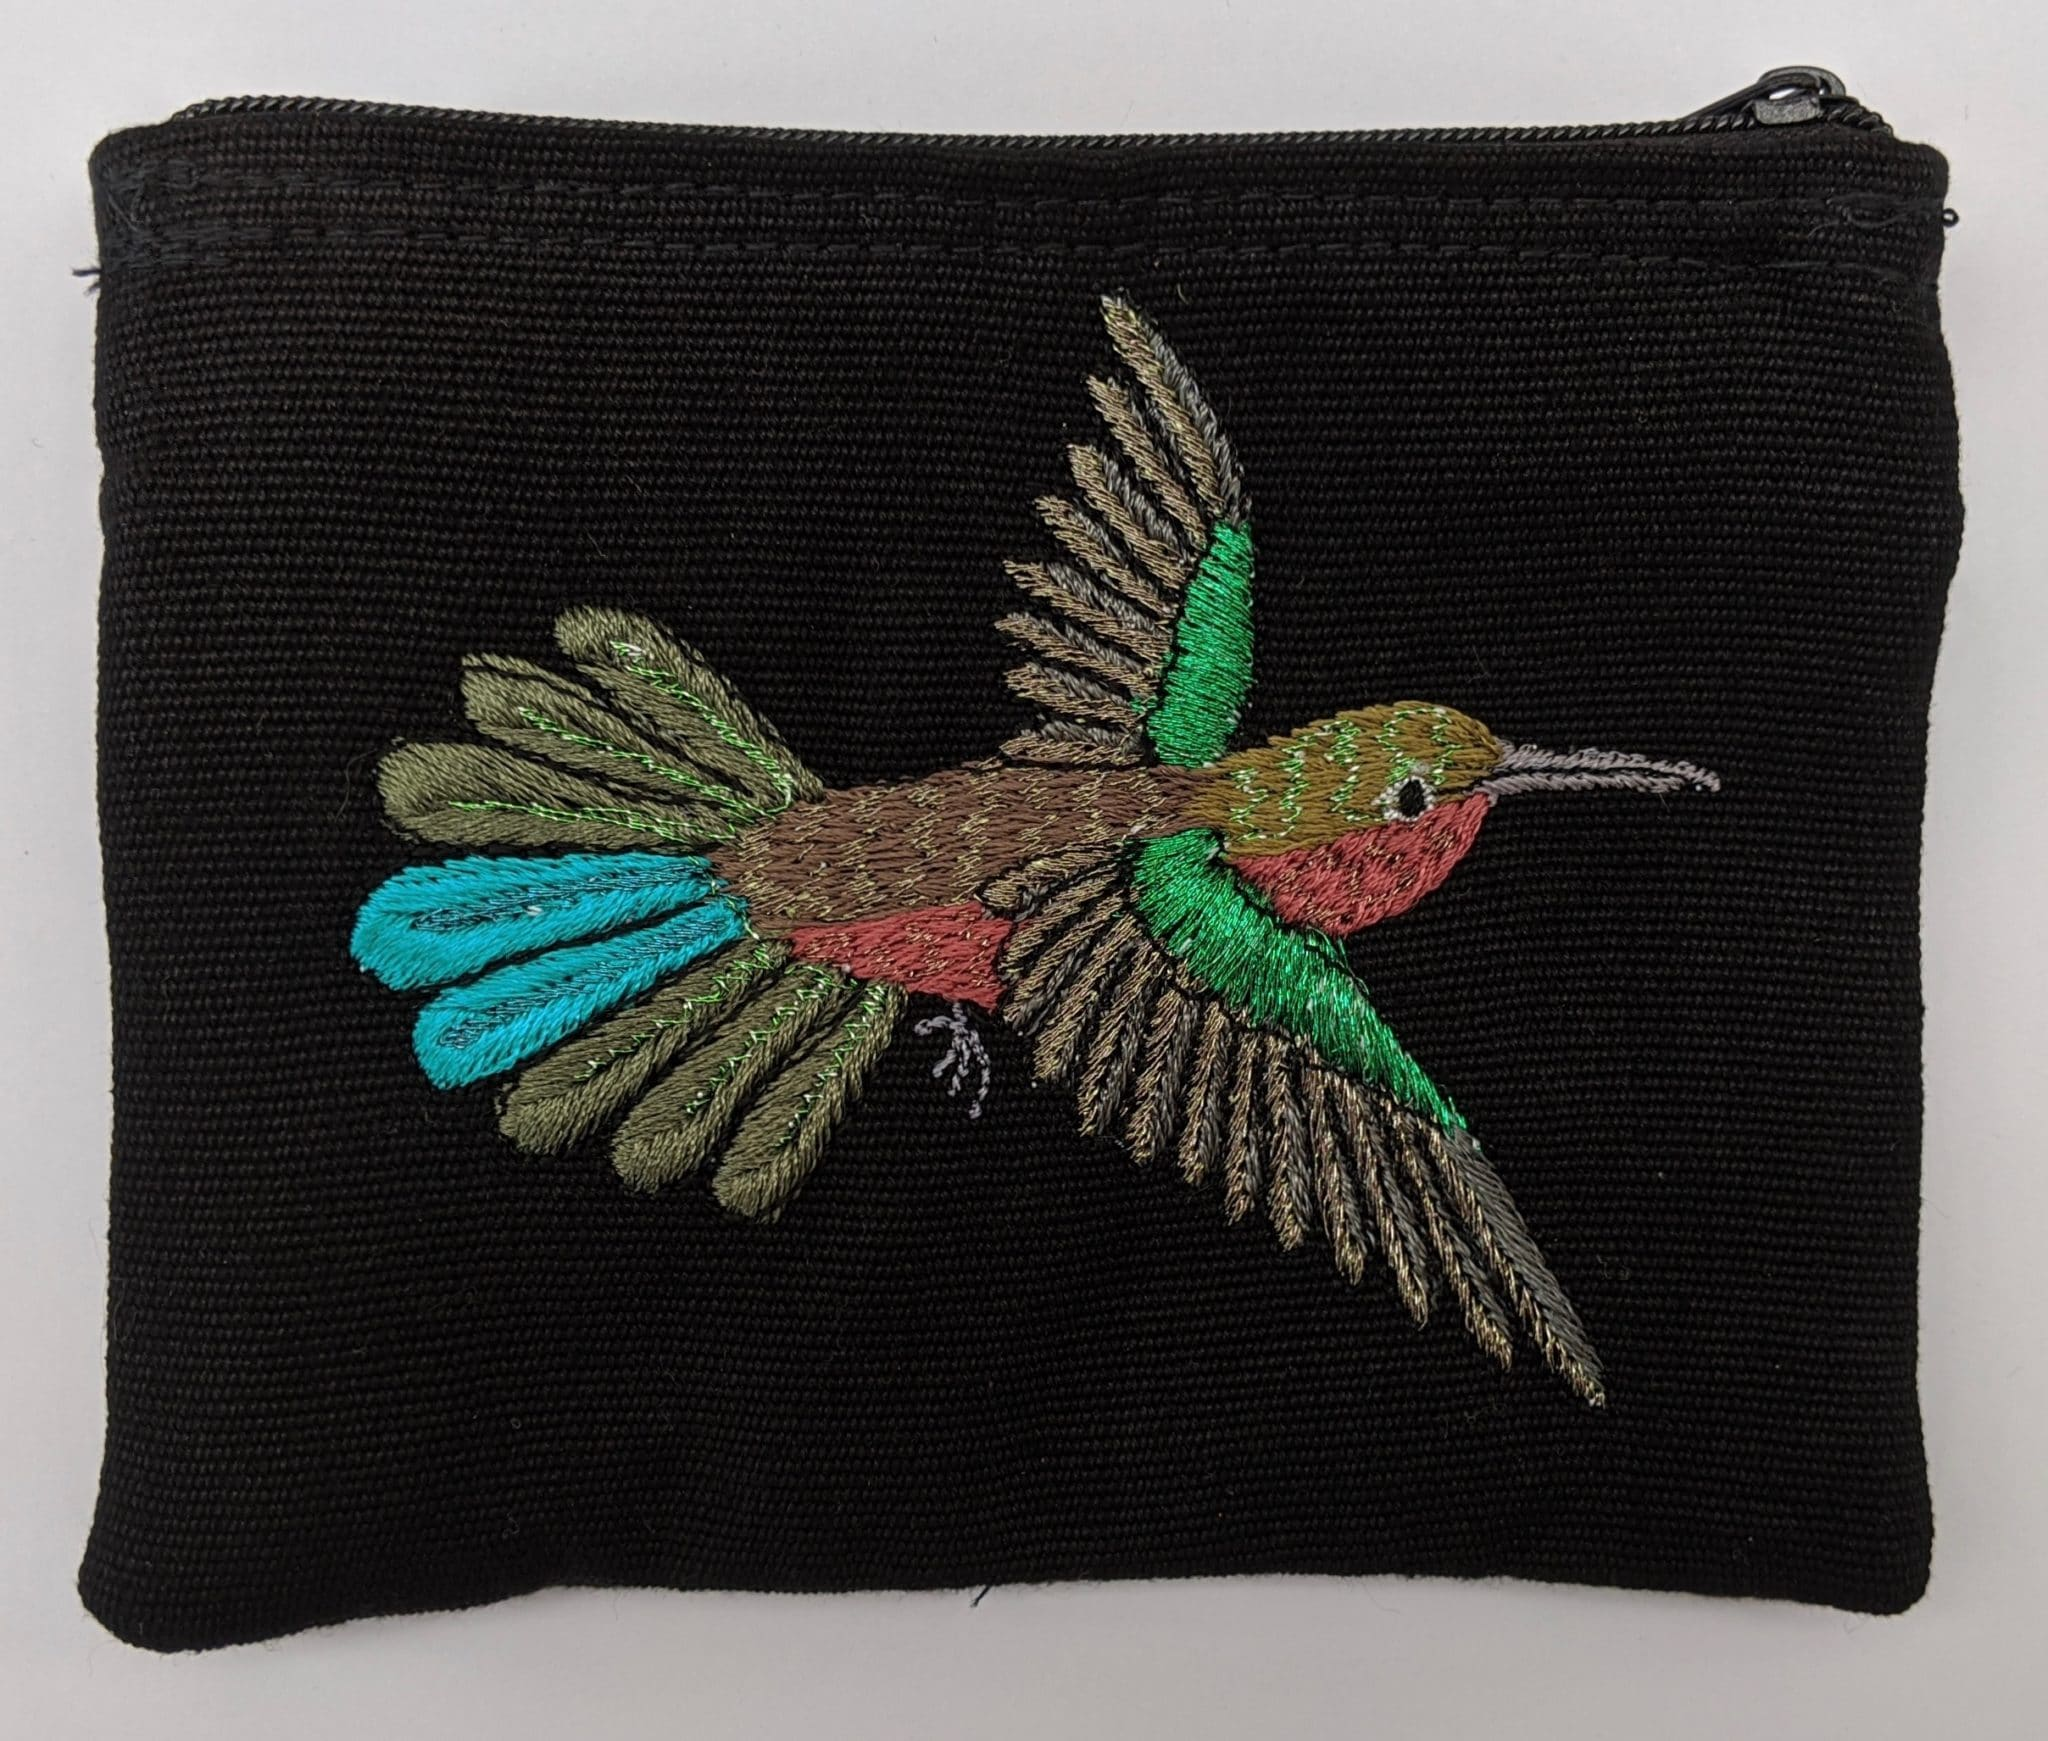 Hummingbird Thread Painted Cotton Coin Purse